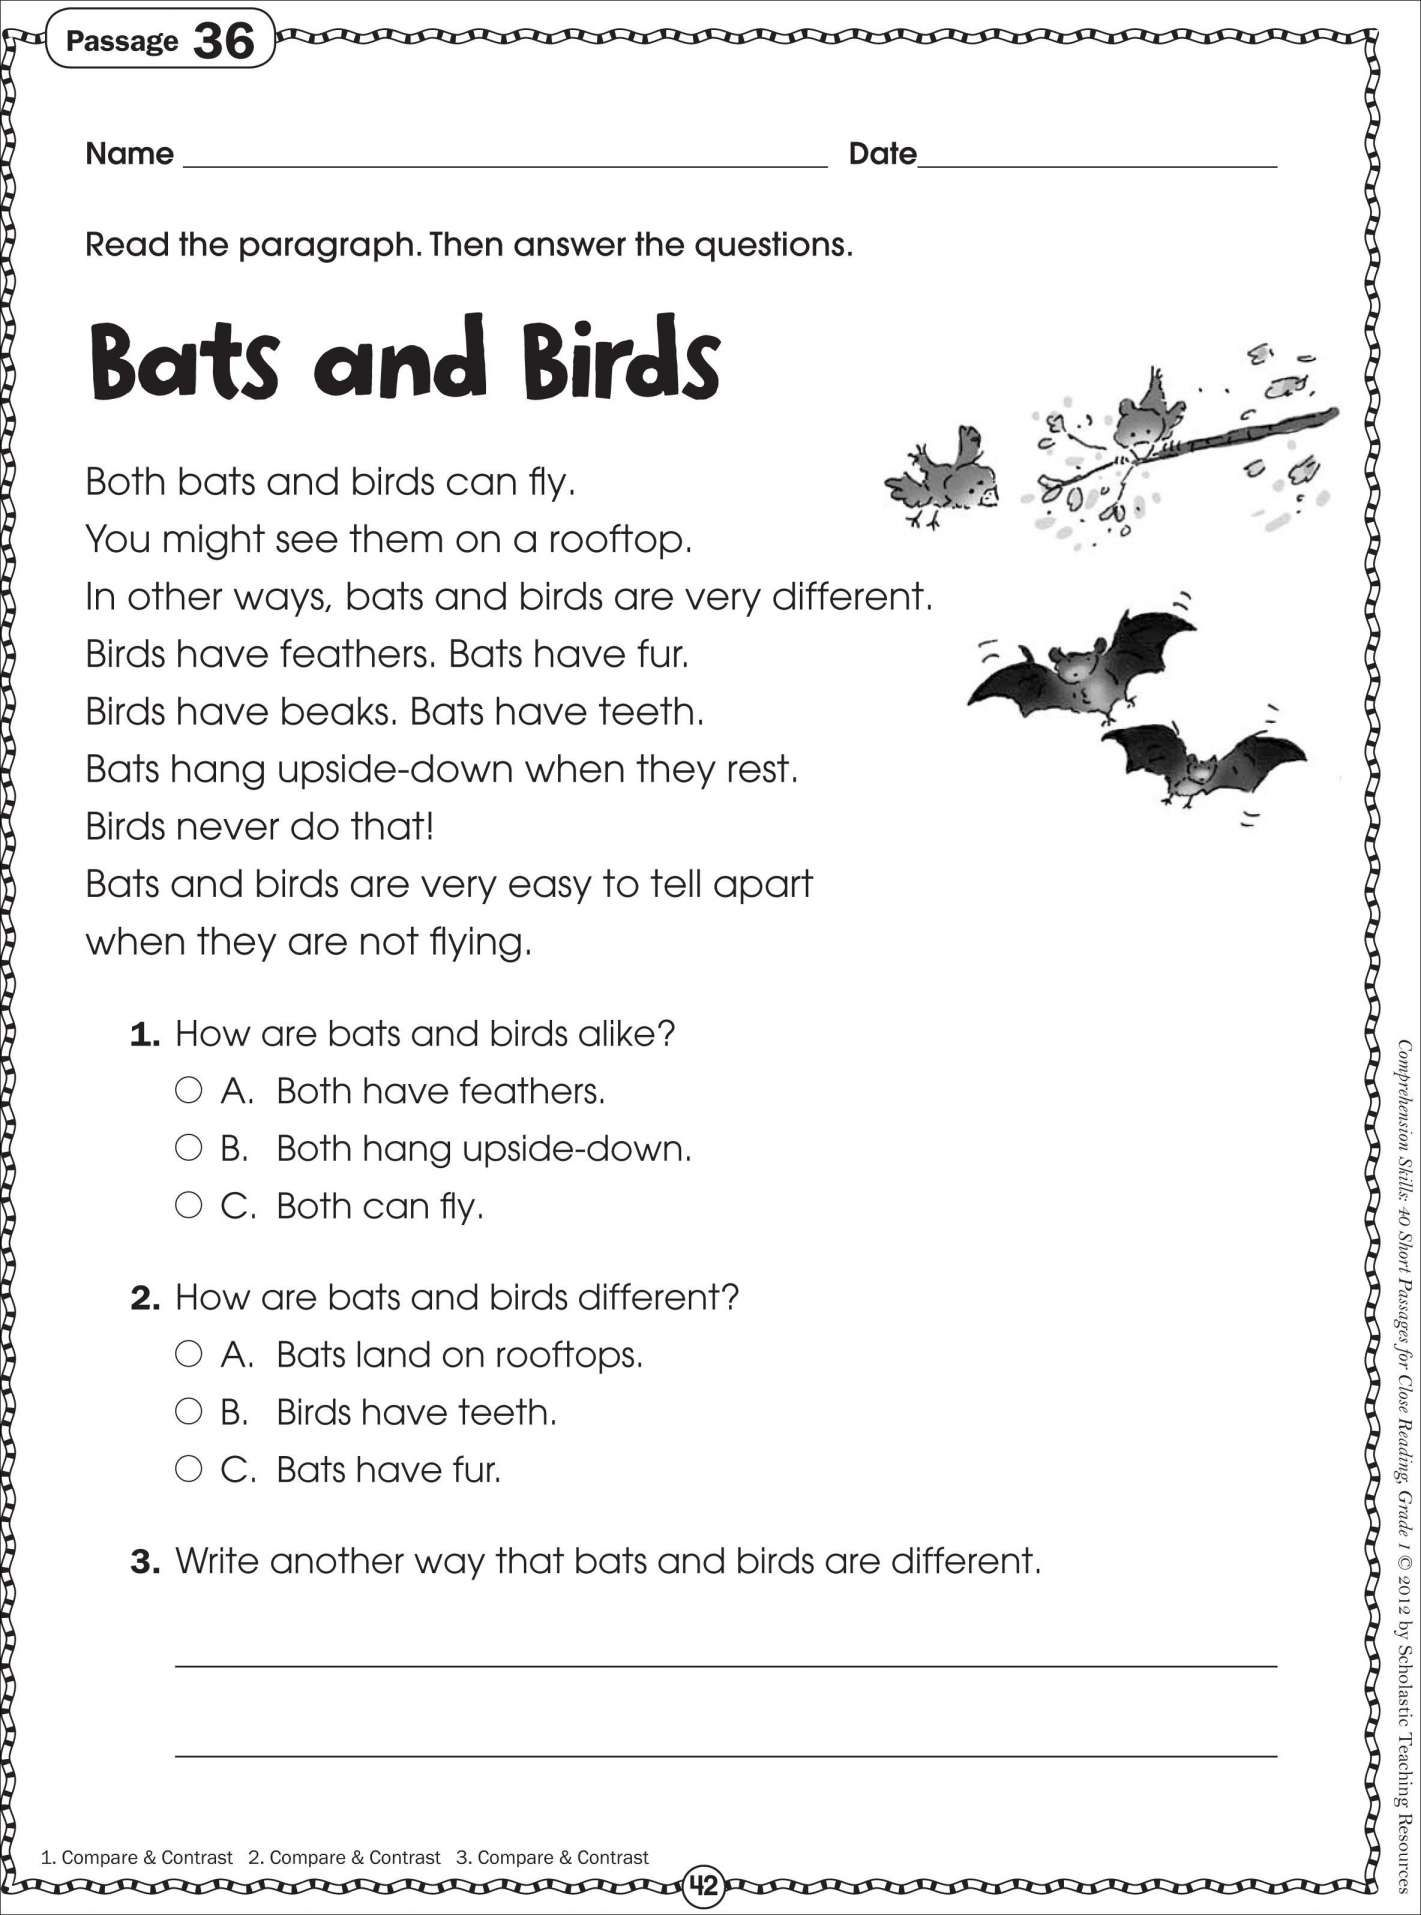 Reading Comprehension Worksheets 5th Grade Of 7 Reading